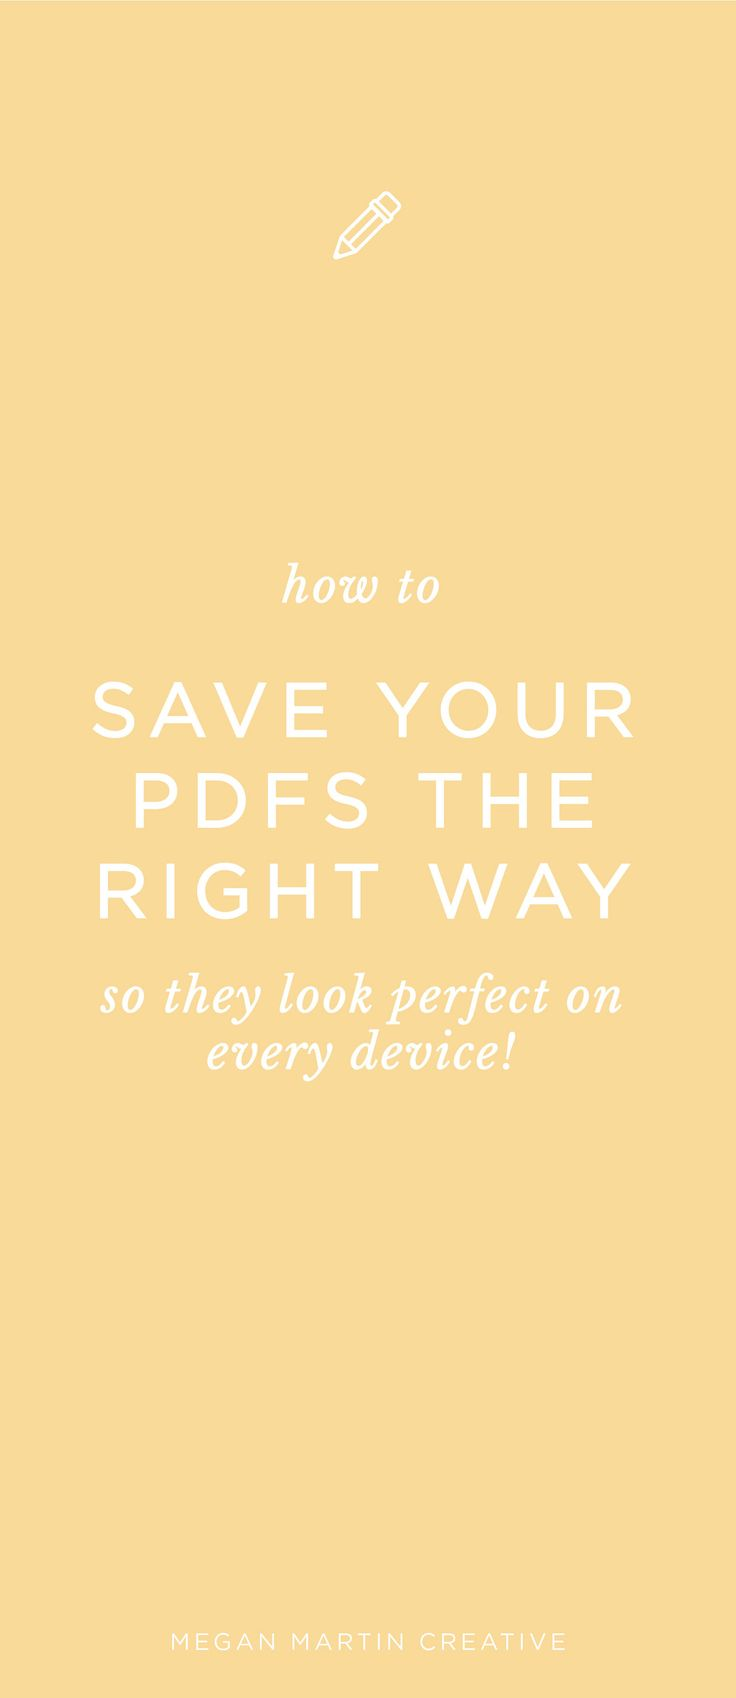 How to properly save your PDFs so they look perfect across all devices, including Apple iPhones and iPads -  on Megan Martin Creative! branding, brand design, content upgrades, adobe illustrator, graphic design tips